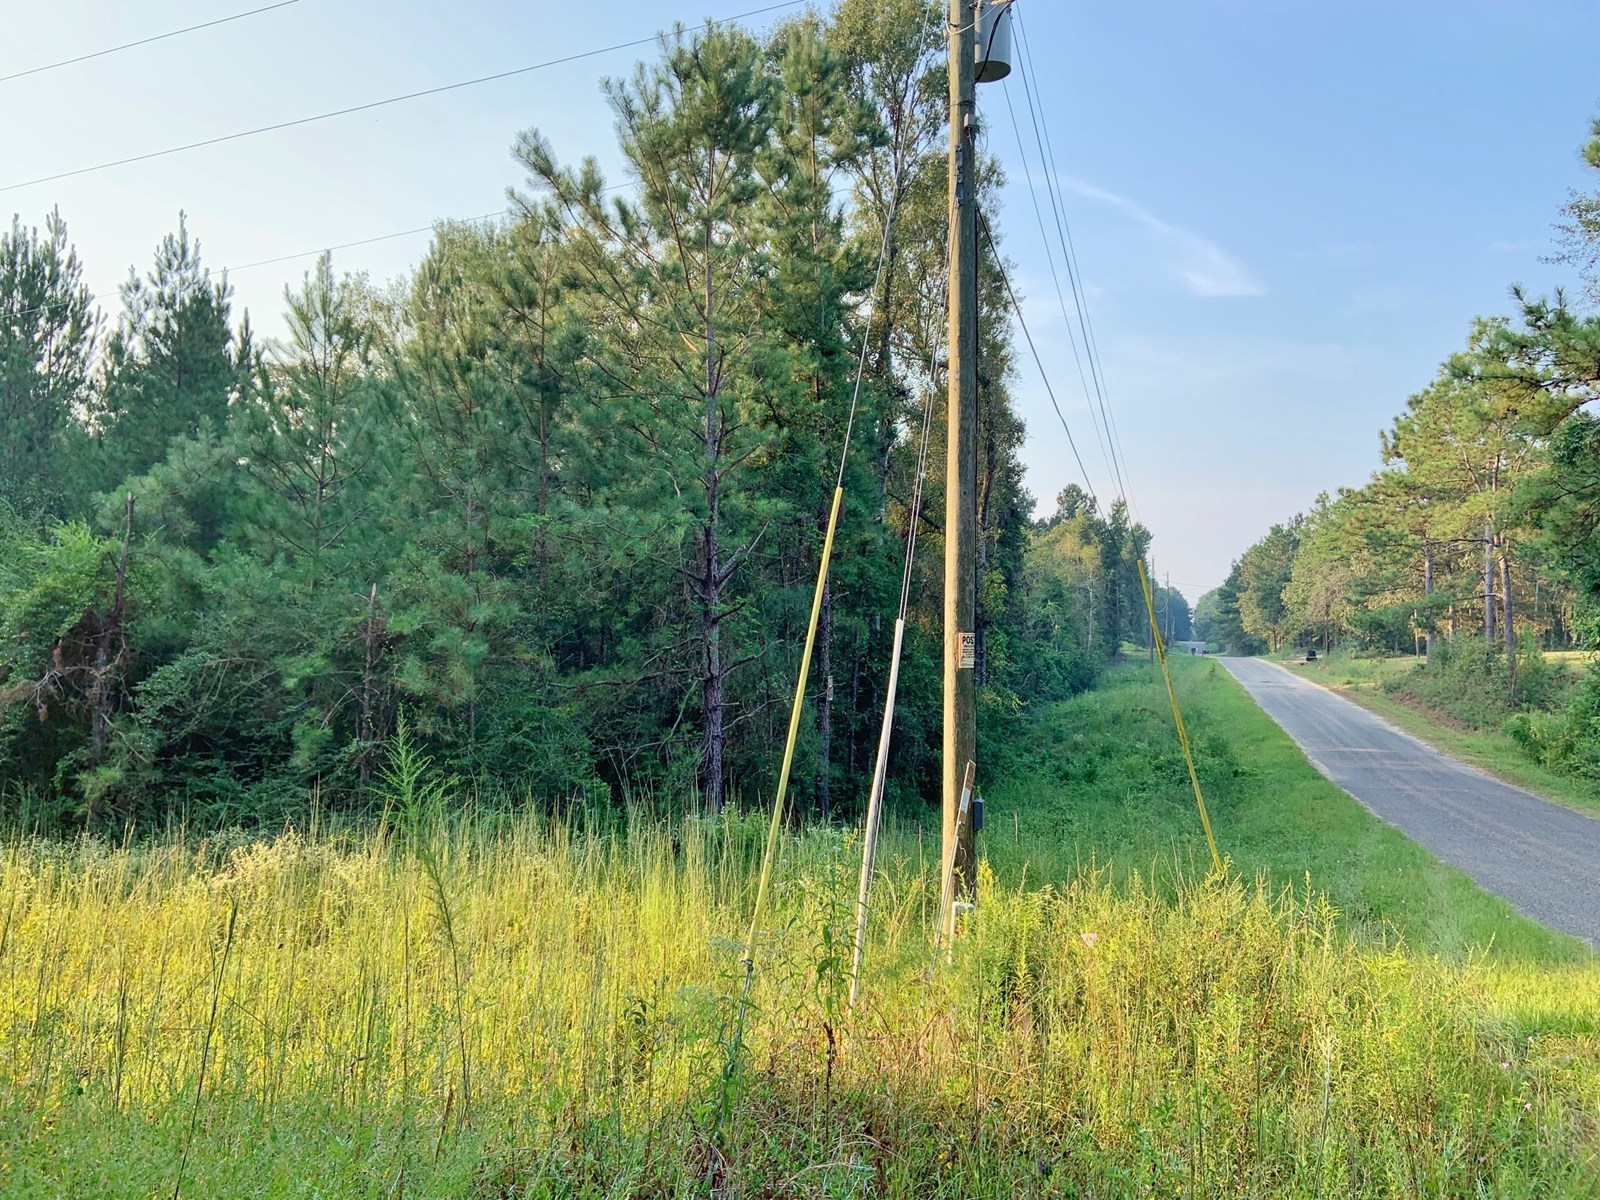 15 Acres Residential Land for Sale Moselle, Jones County, MS